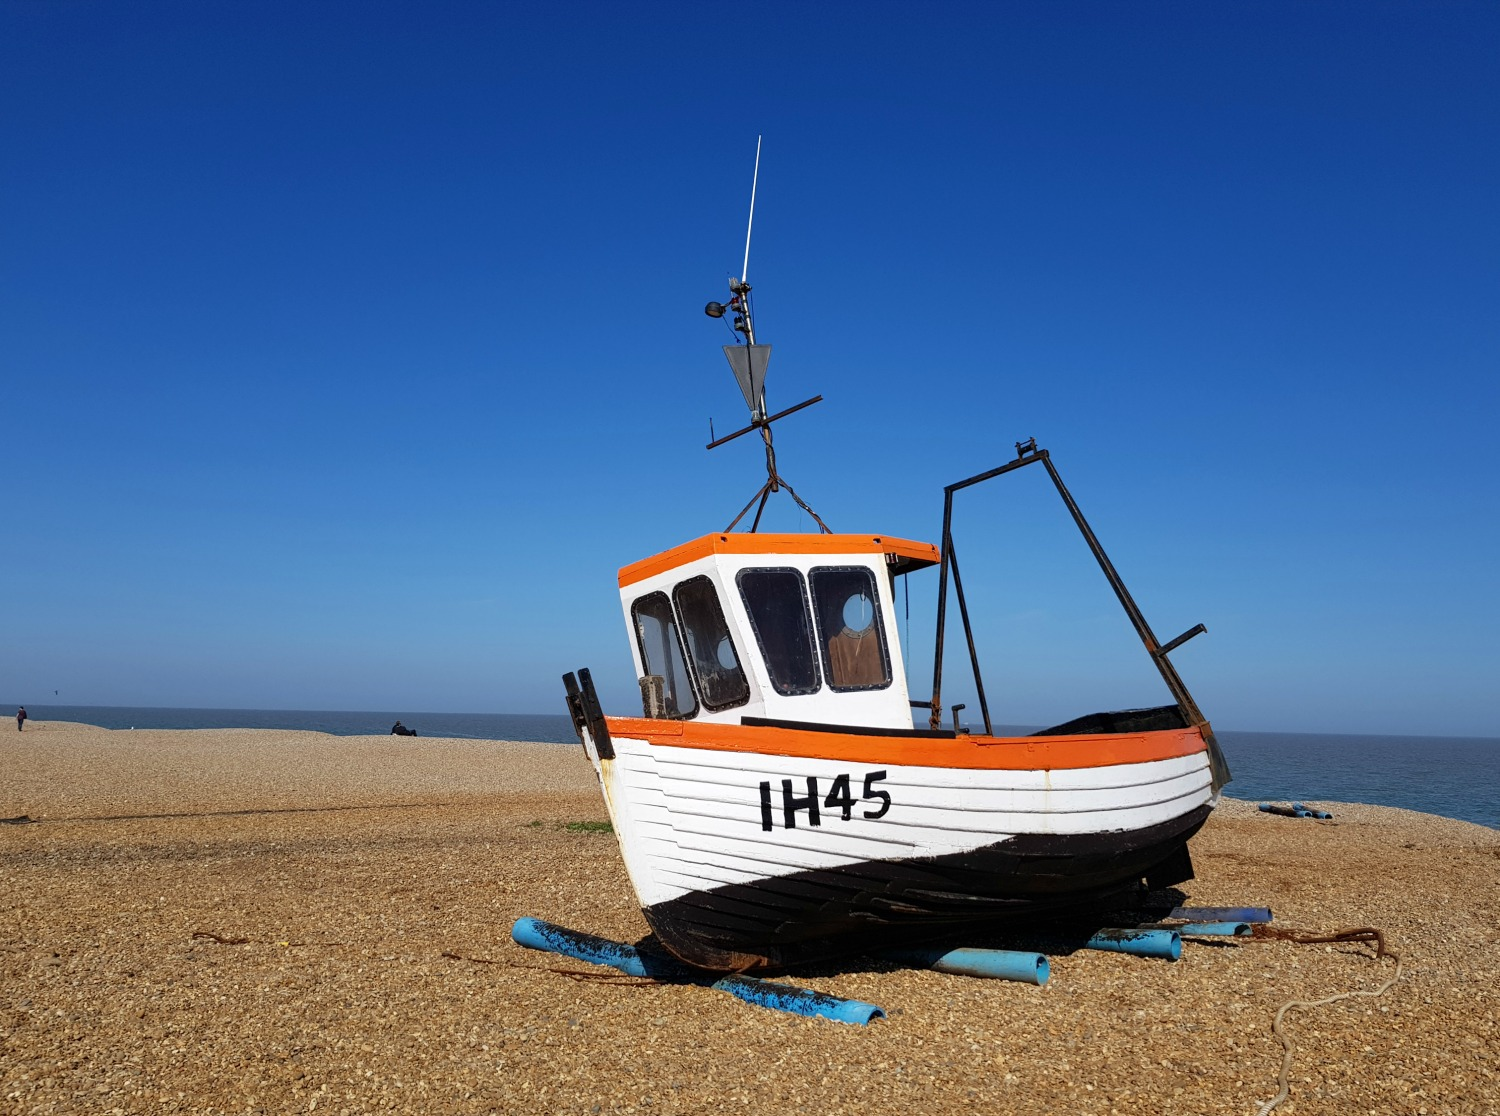 A boat beached on the shingle at Aldeburgh against a bright blue sky - one of my things to do in Aldeburgh with kids if you're visiting Suffolk